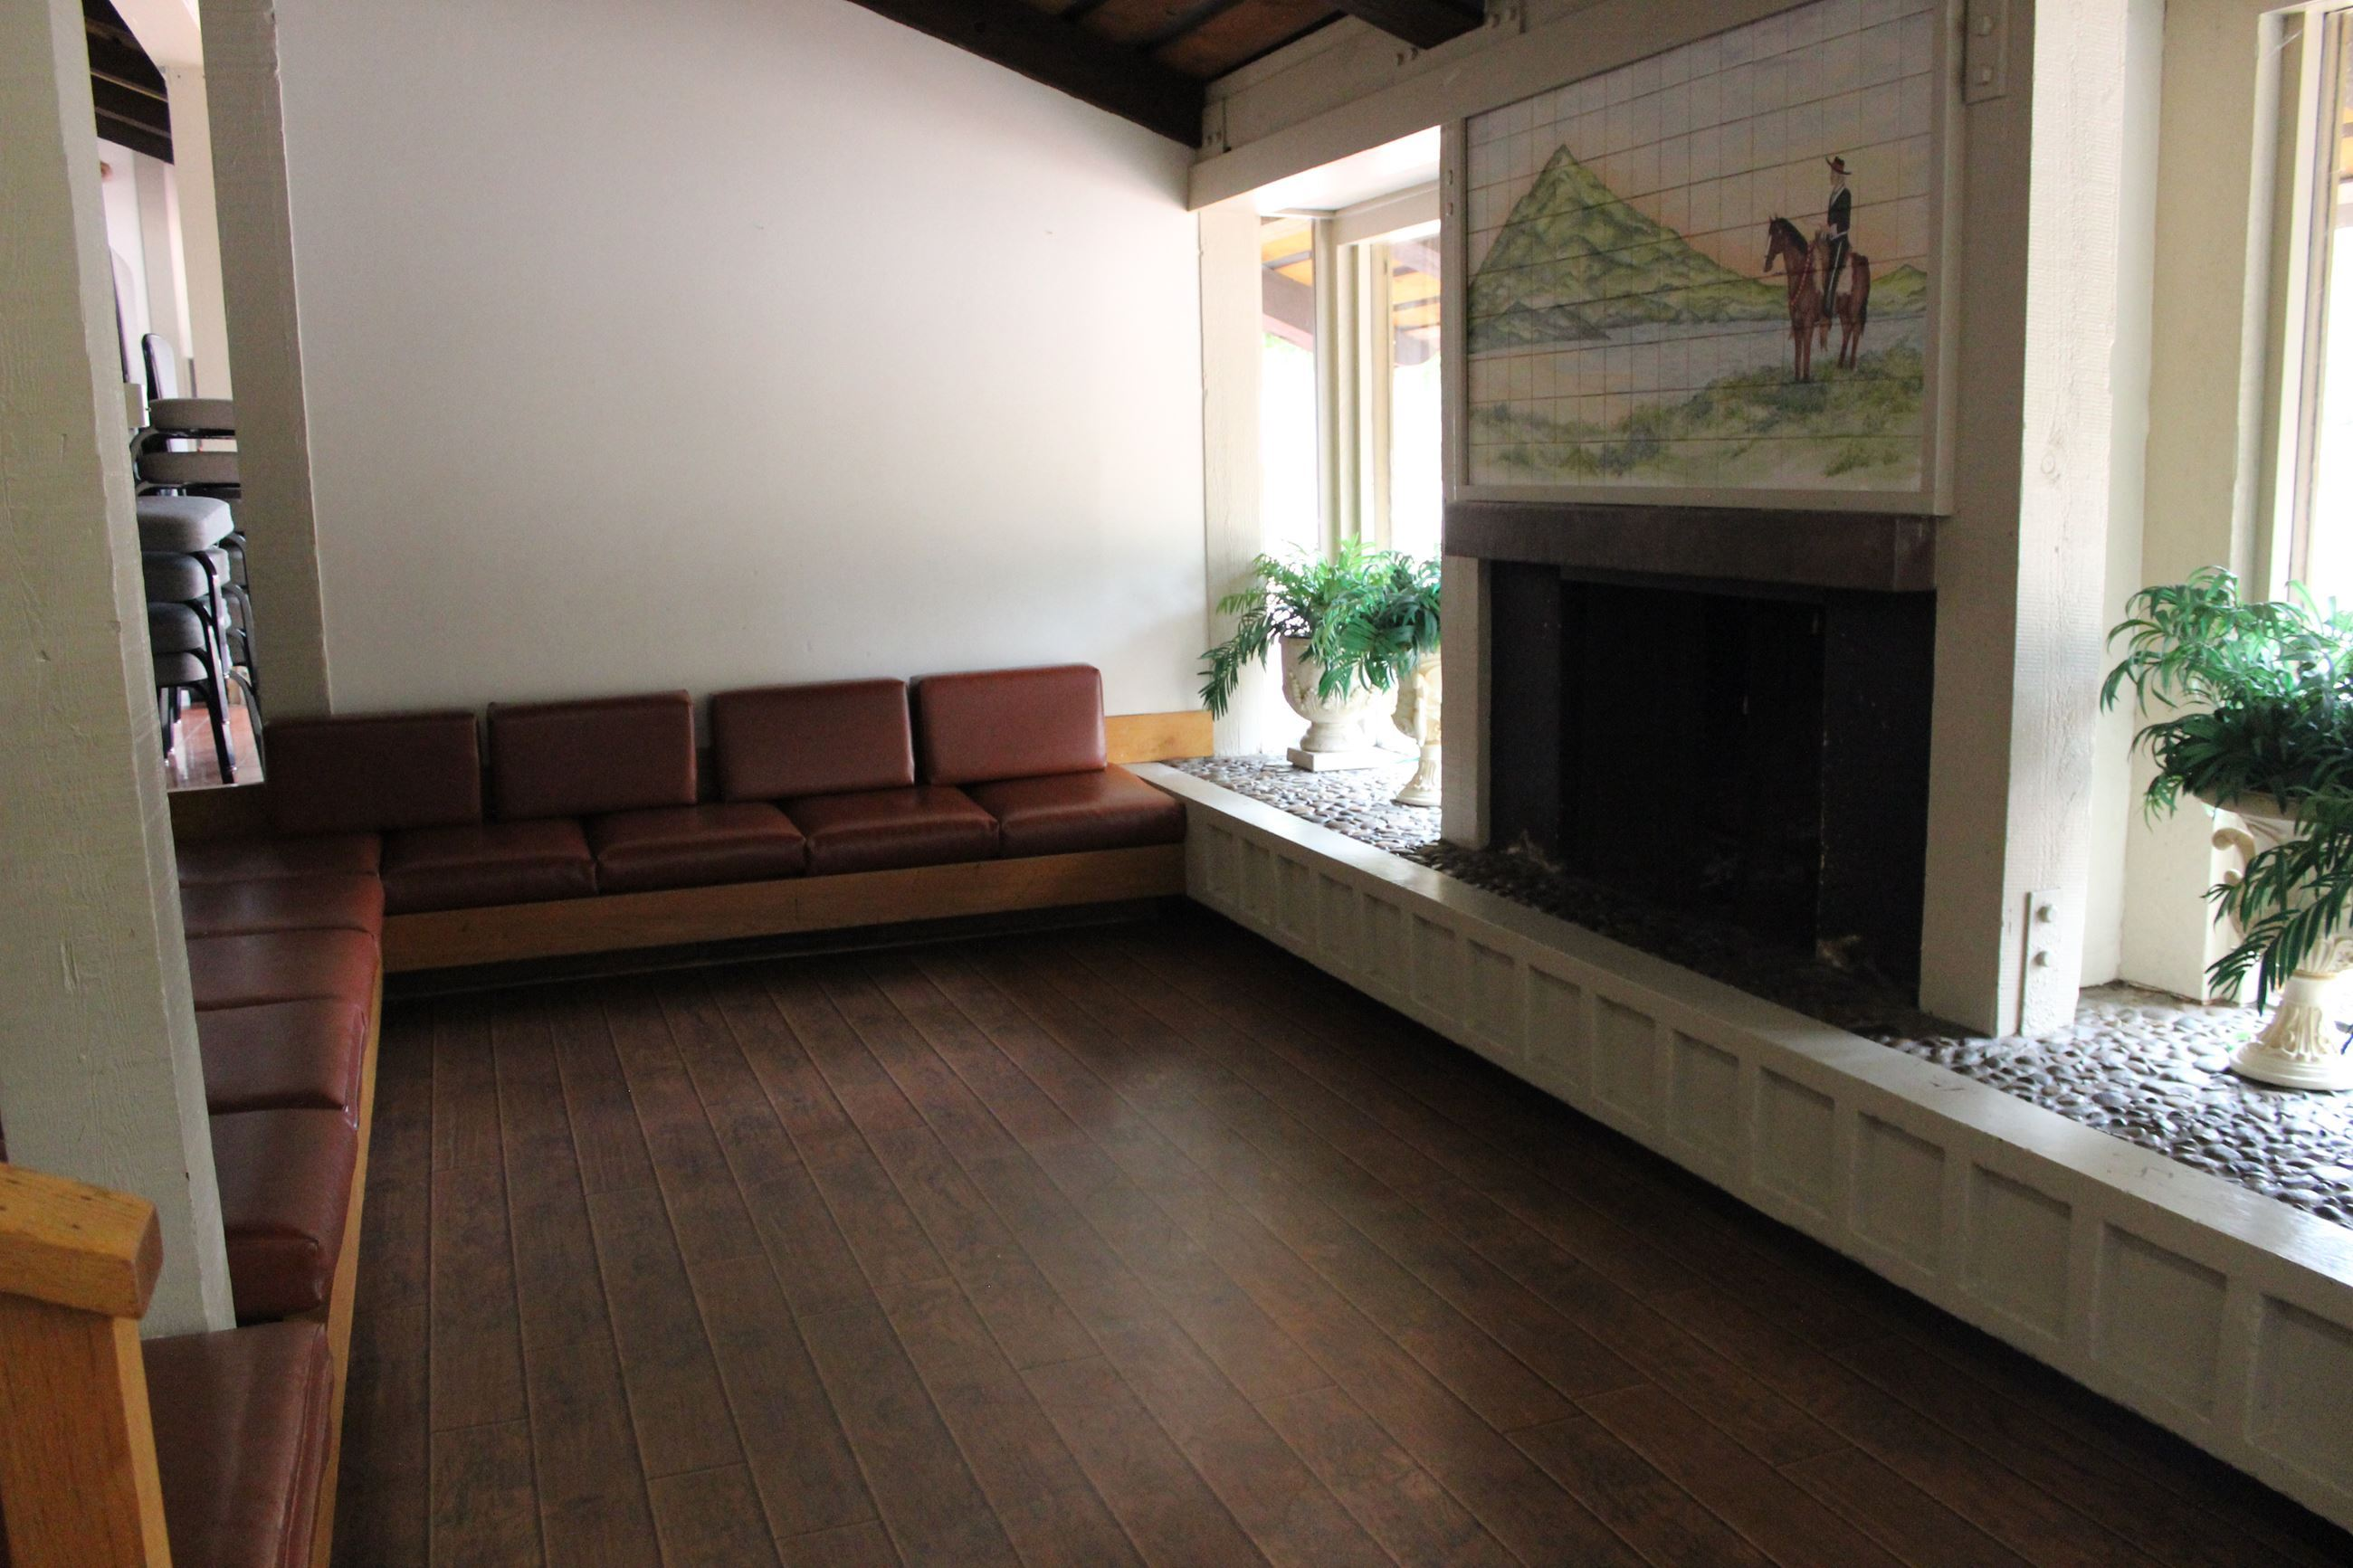 Fireplace Seating Area in Maple Hall